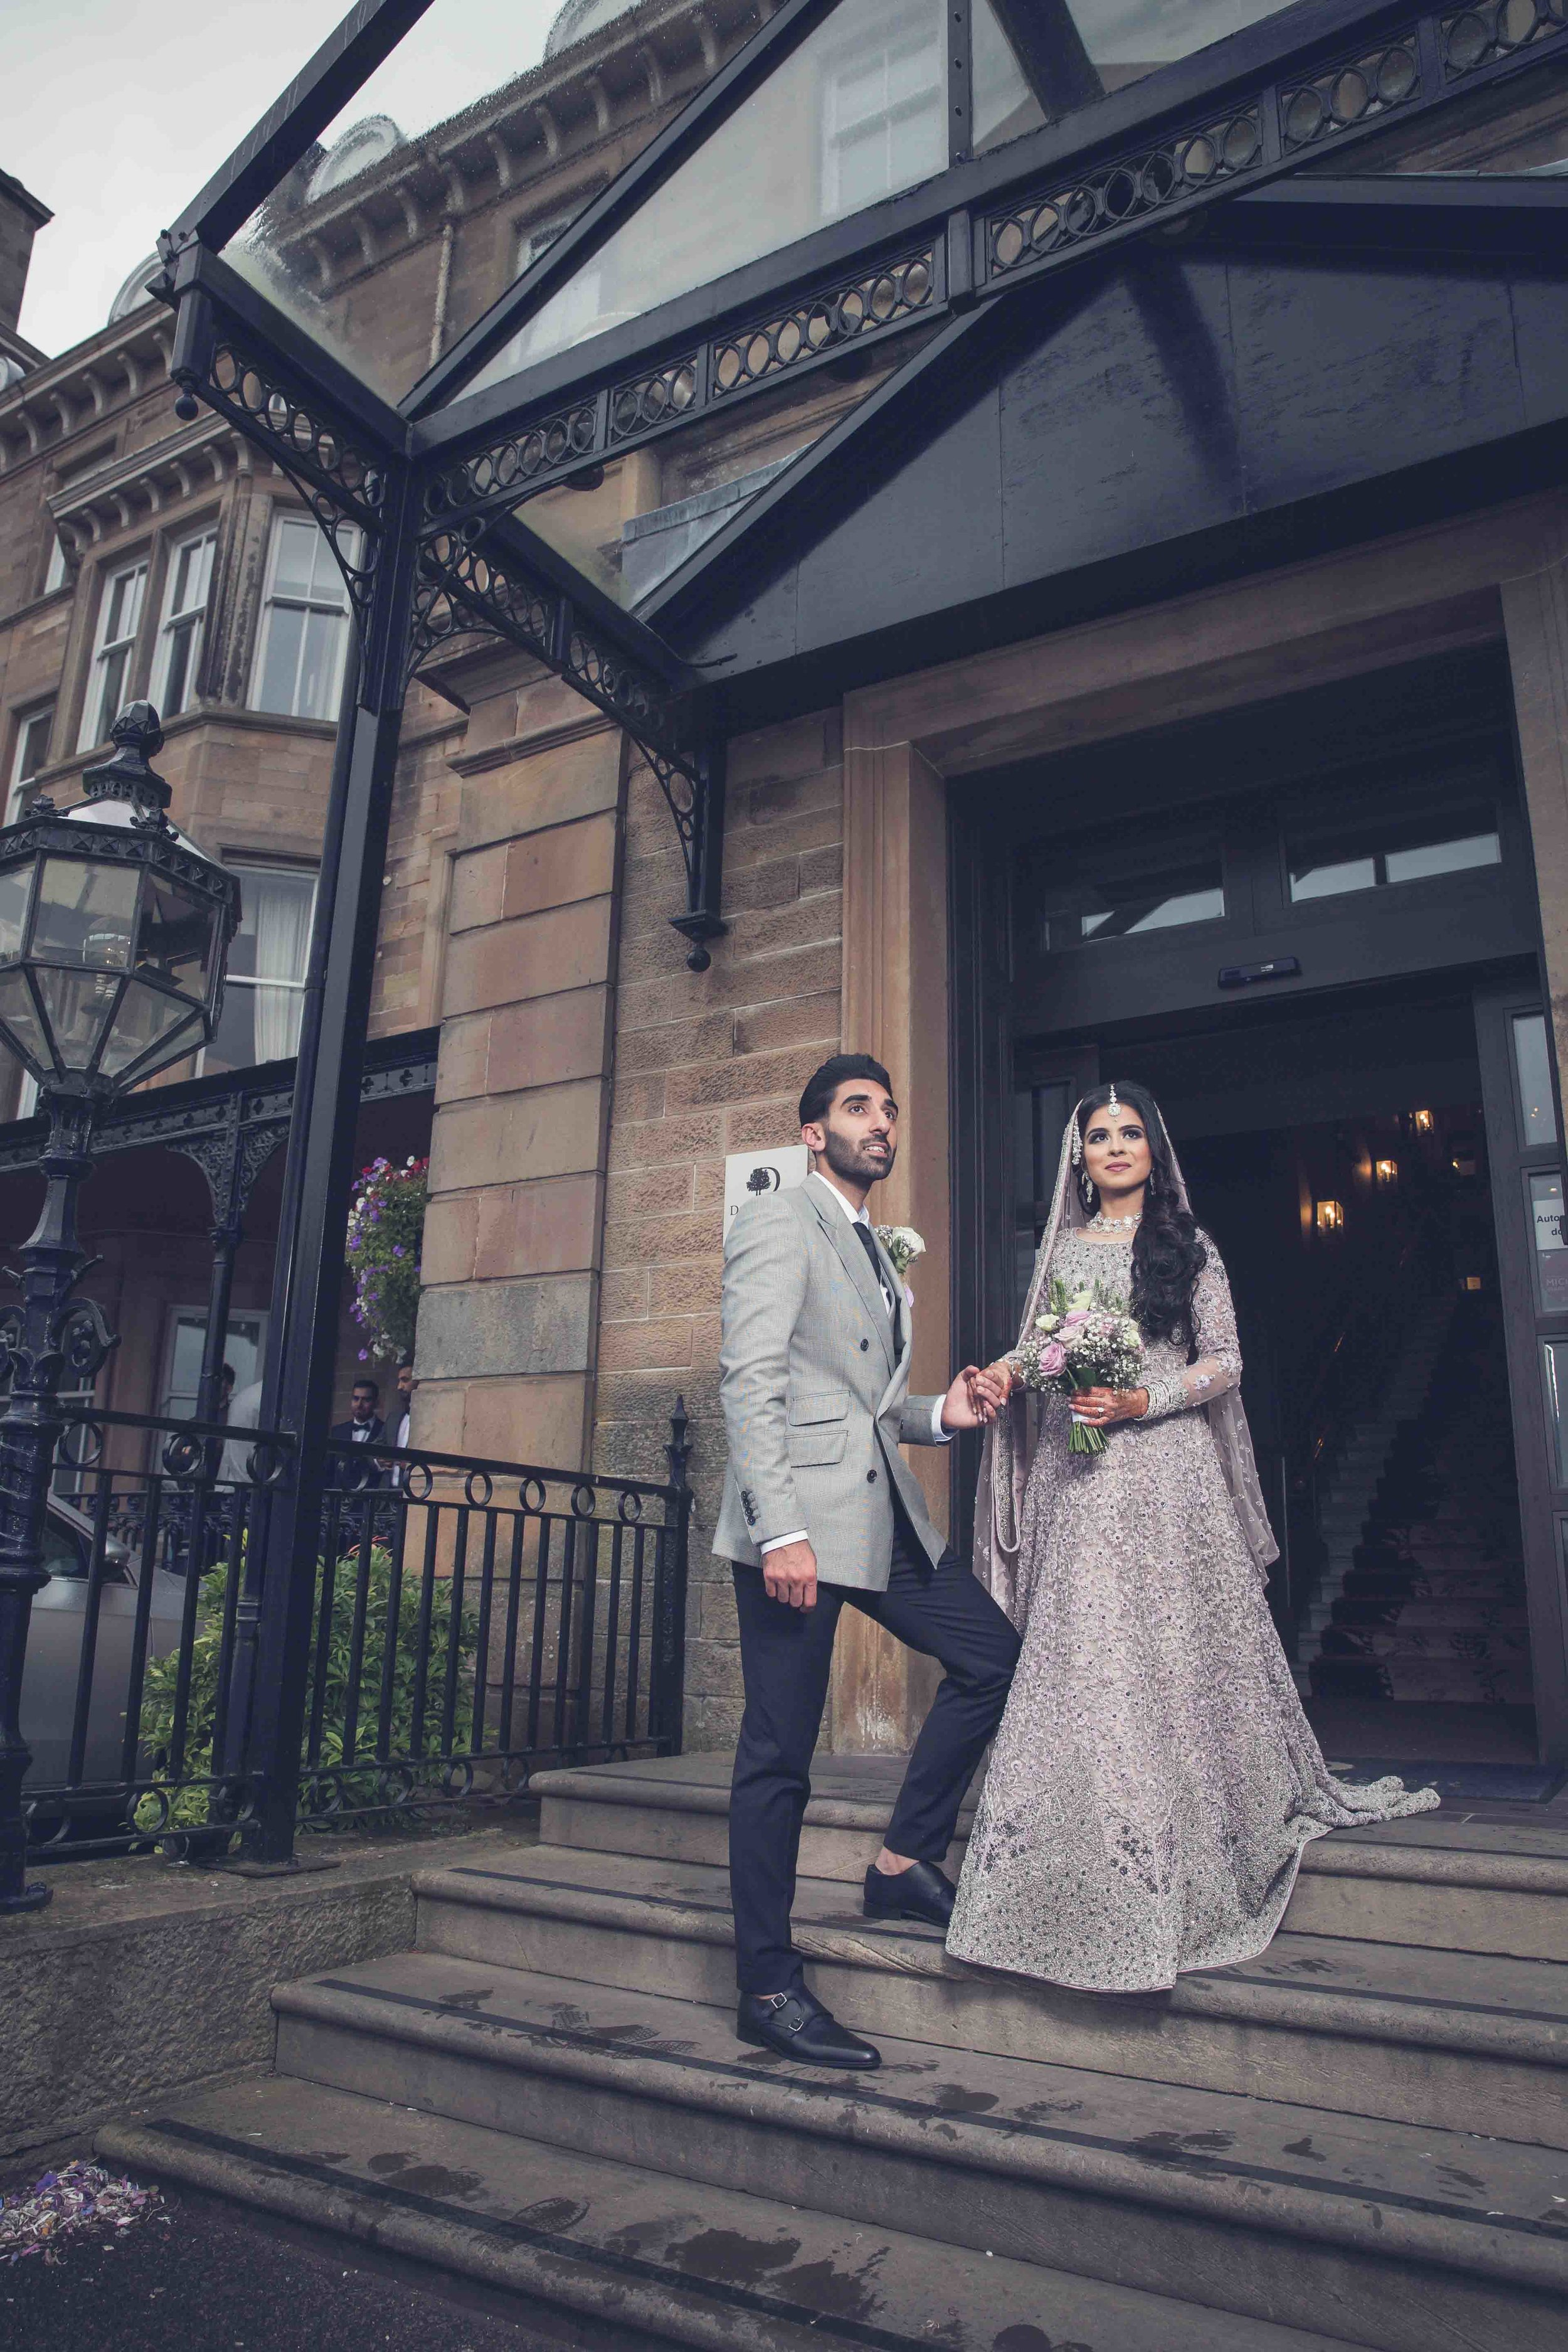 Opu Sultan Photography Asian wedding photography scotland edinburgh glasgow manchester birmingham london-294.jpg